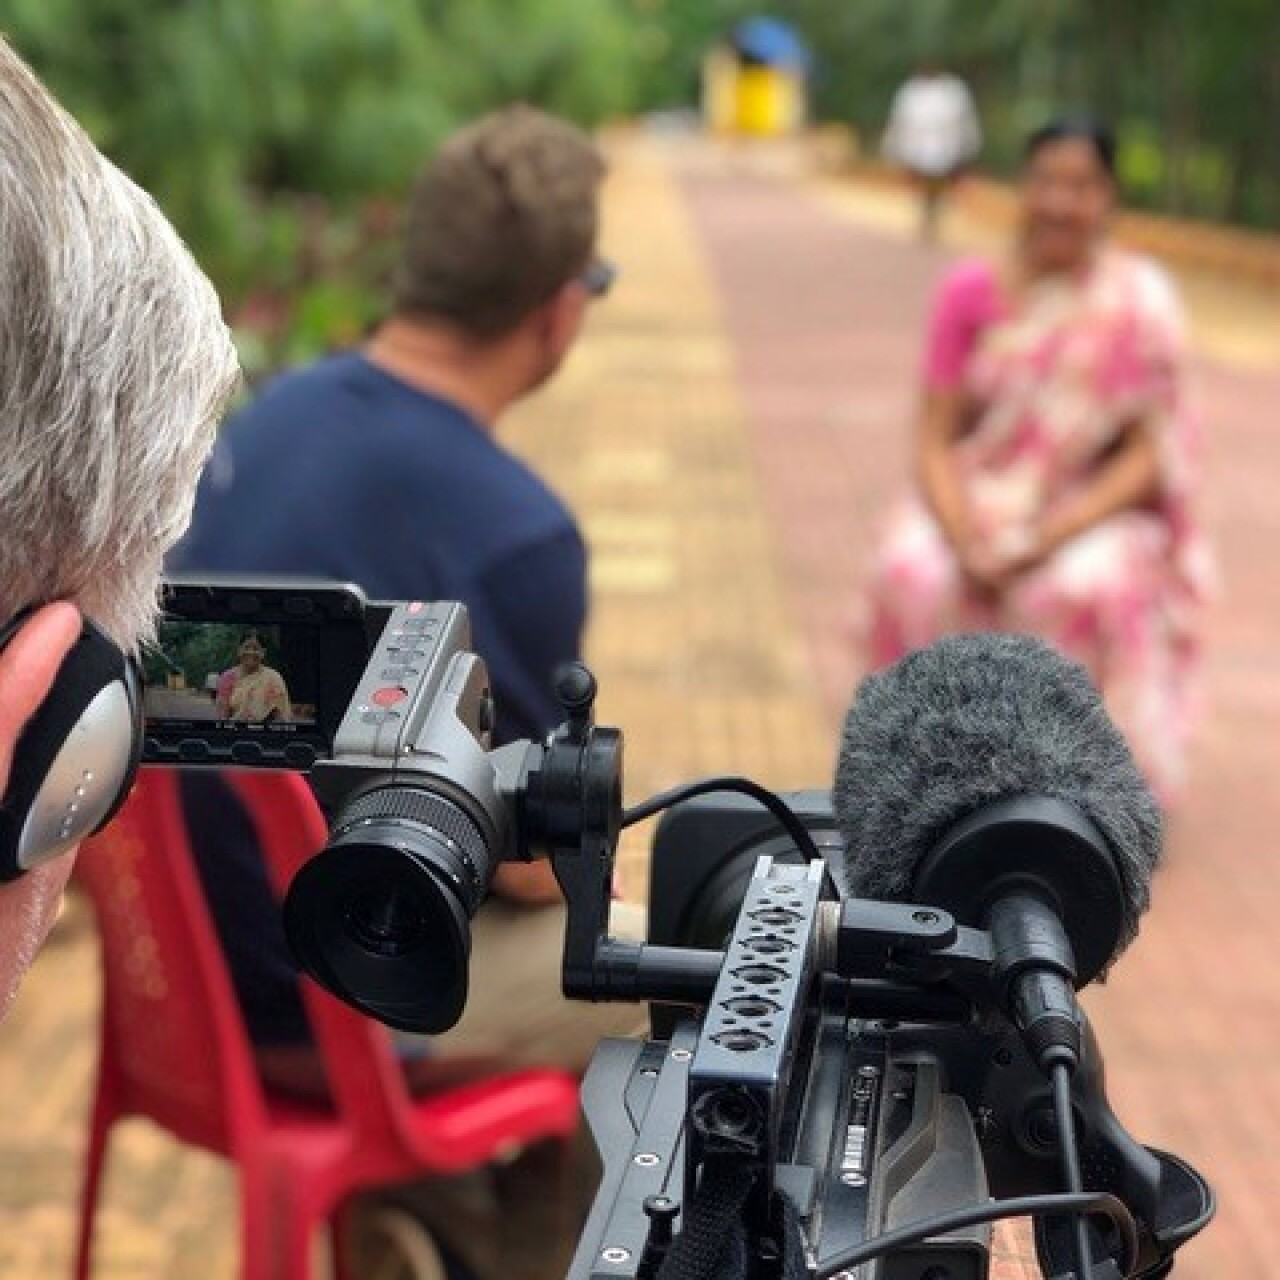 The videographer is focusing his camera on a local woman giving an interview. She is out of focus.